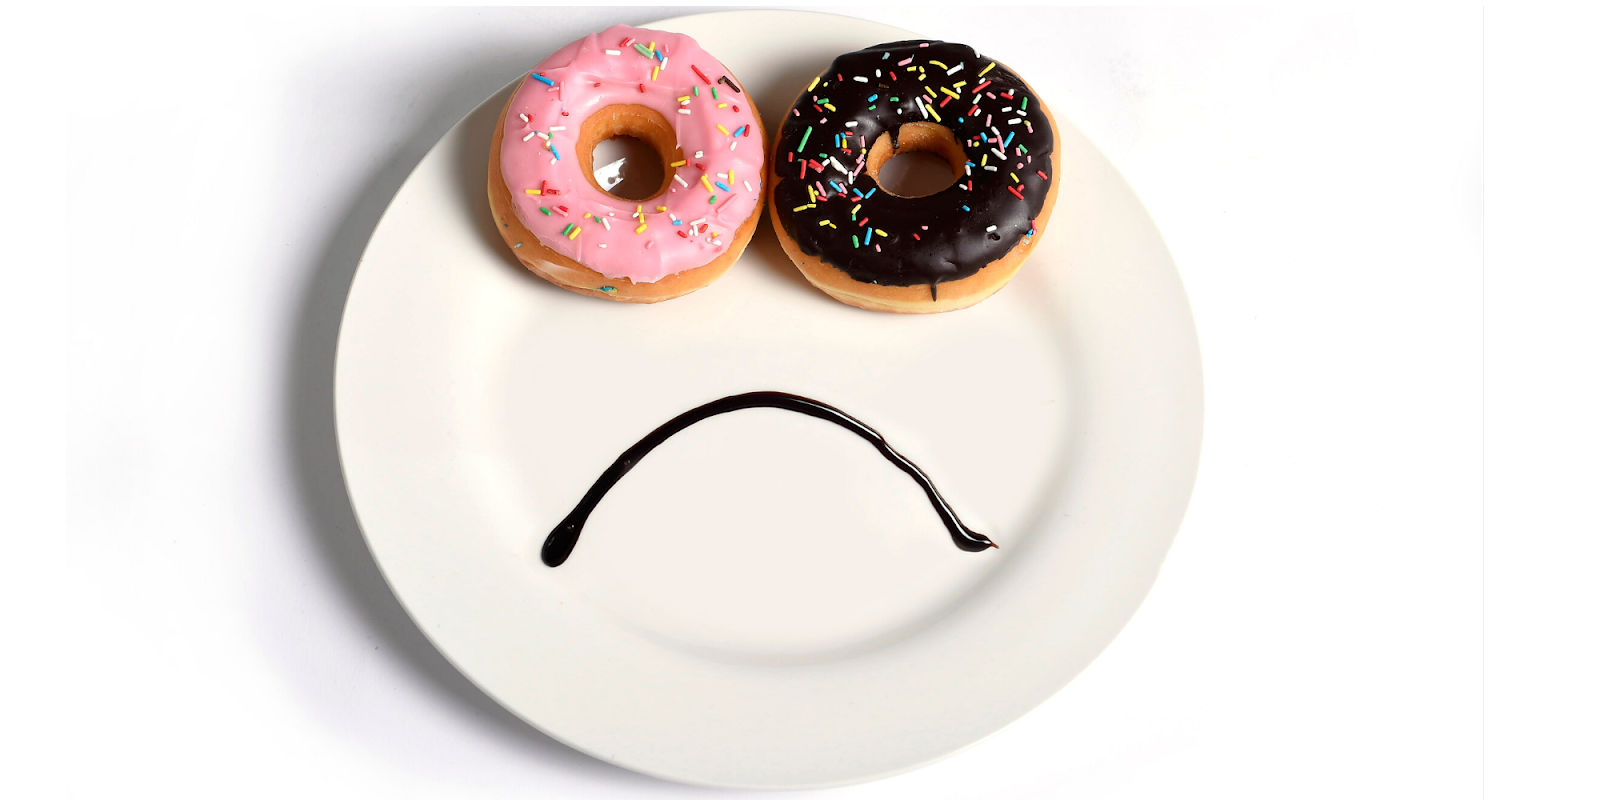 donut eyes and chocolate syrup frown on a plate making a sad face